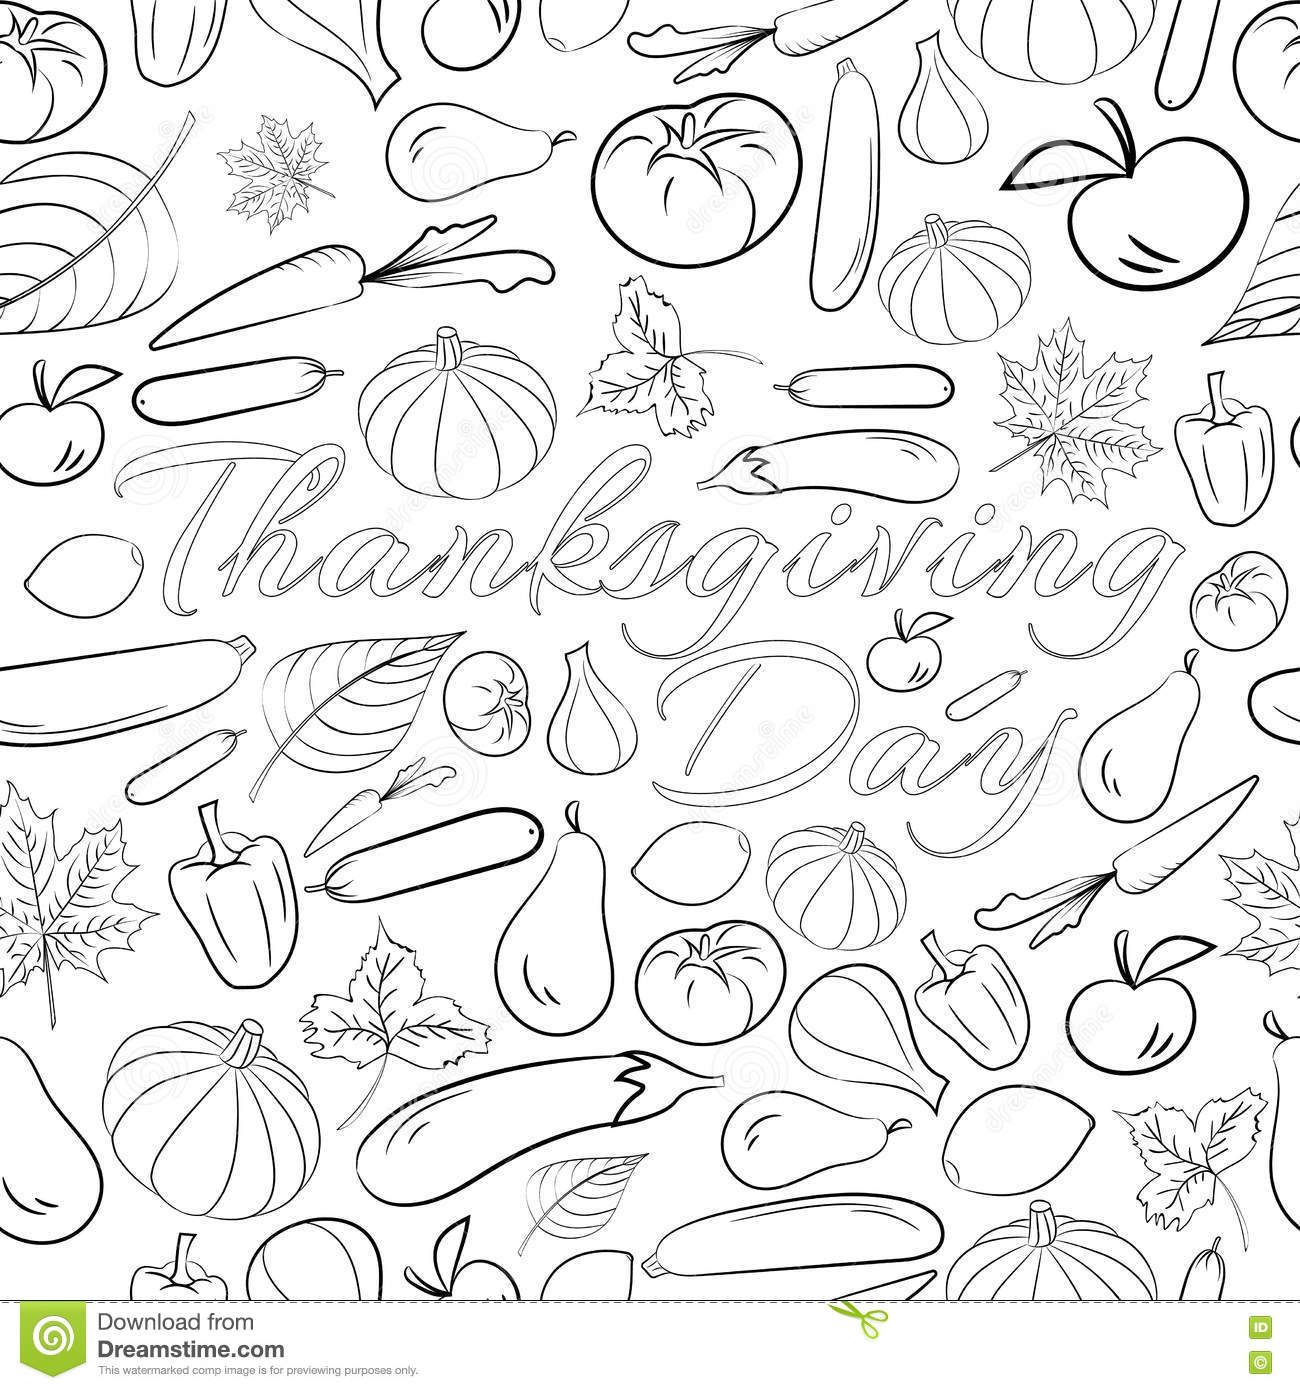 Thanksgiving Black White In Doodle Cartoon Vector